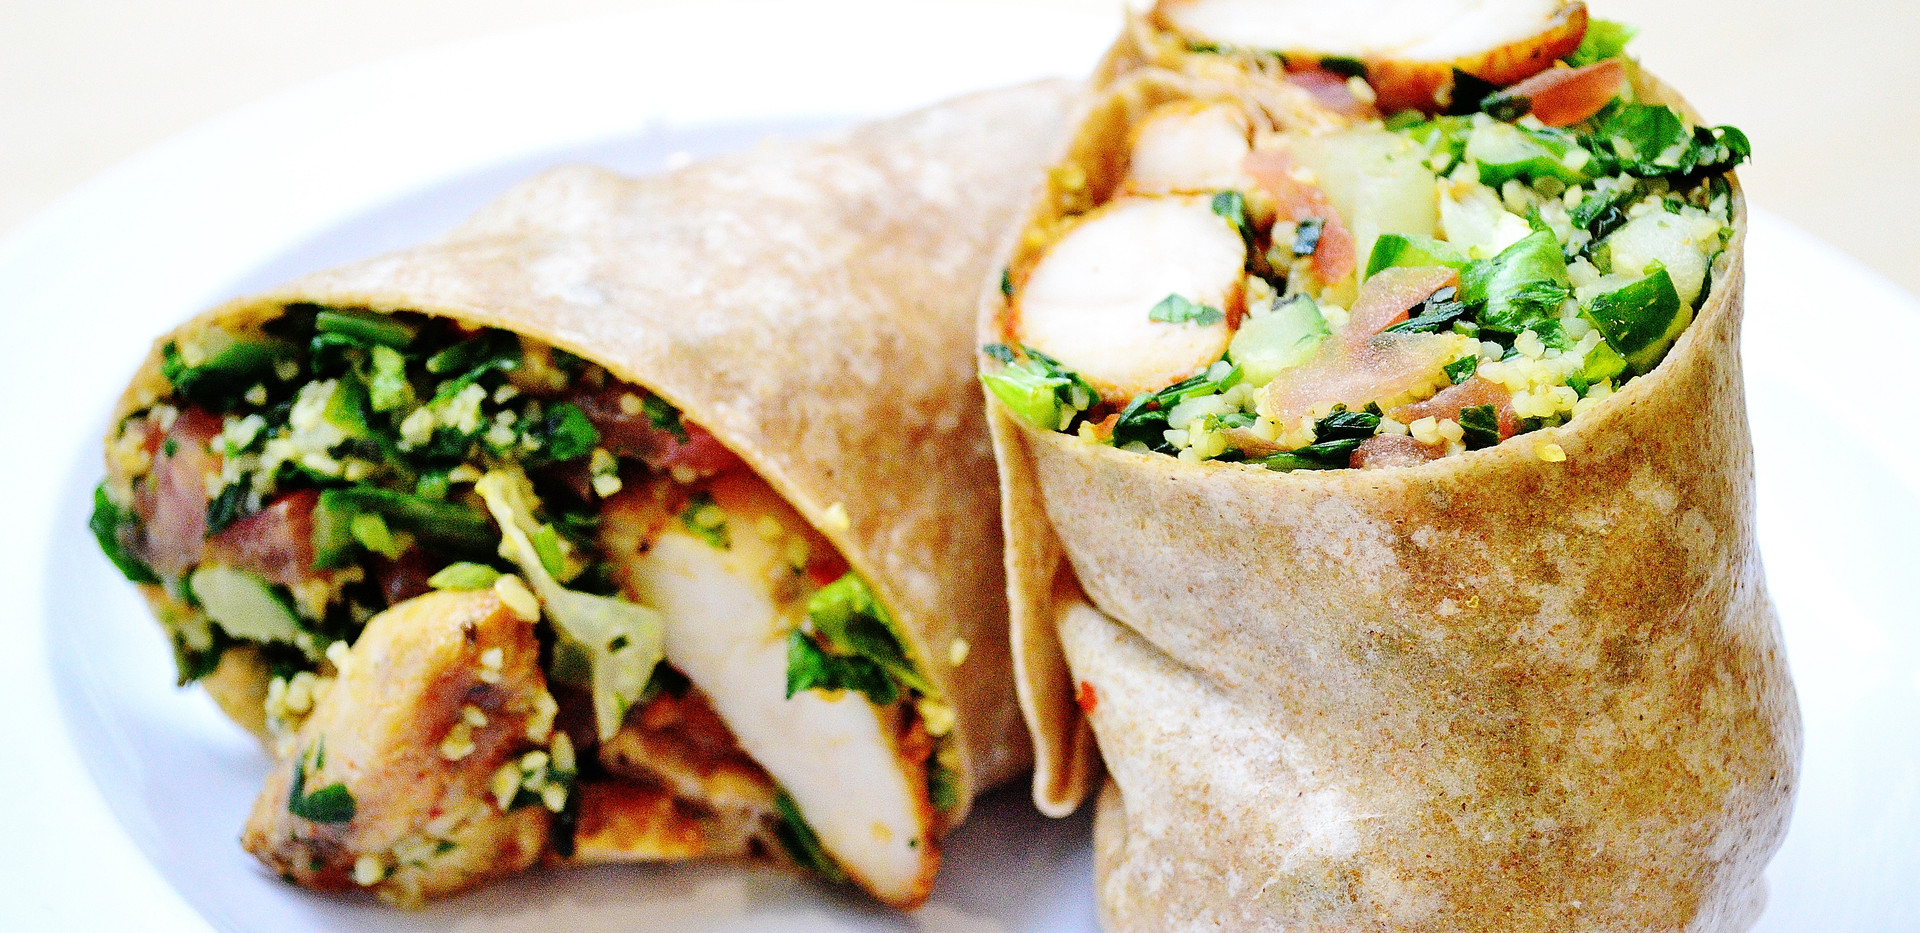 Build your Own Wrap _ Bombay Wraps.jpg